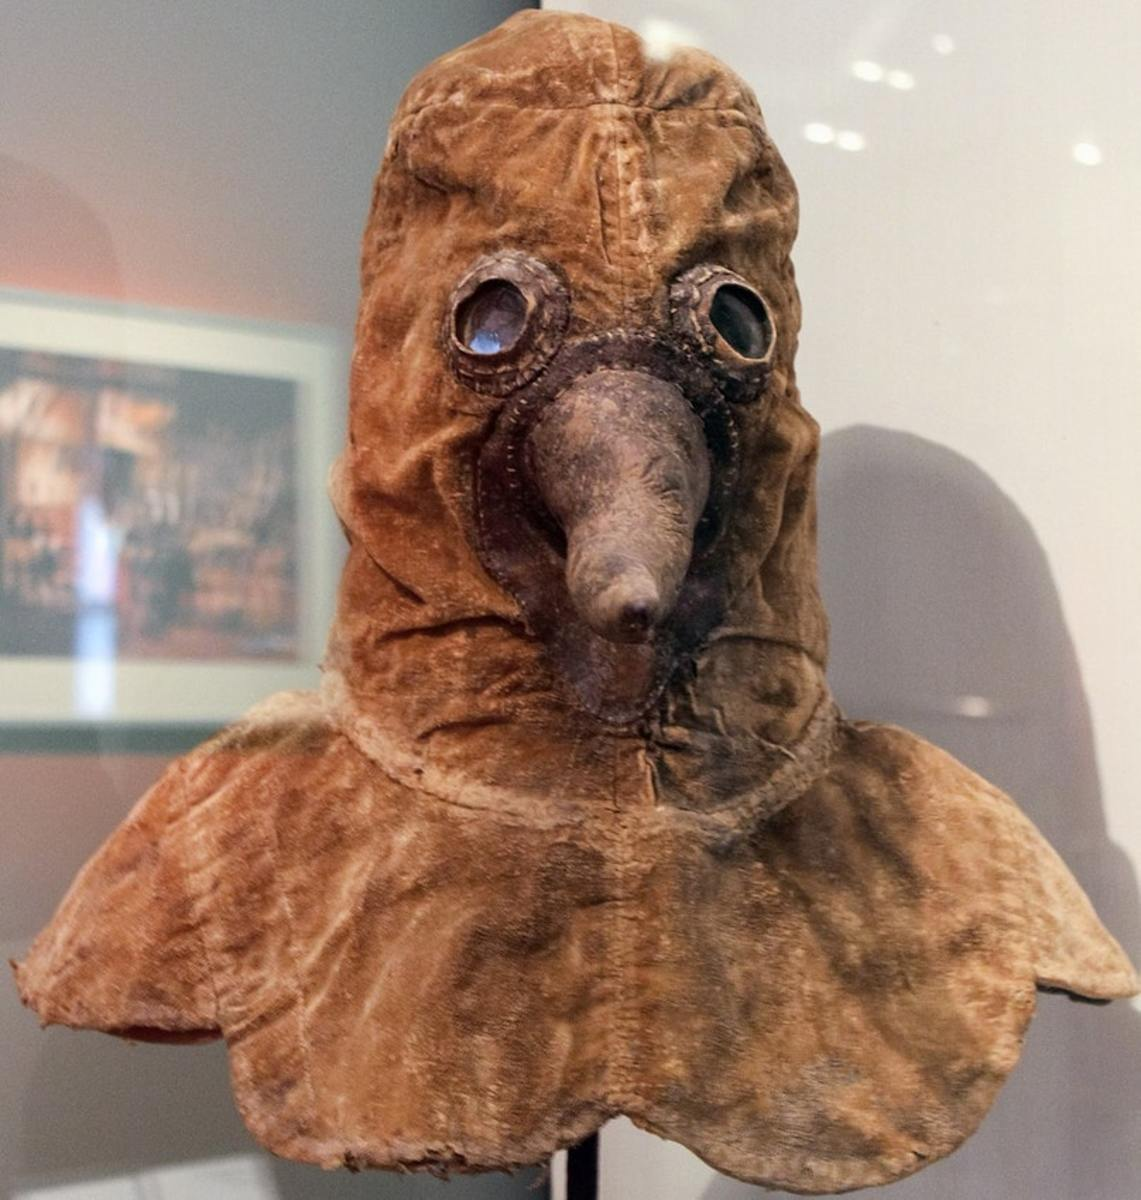 A 17th-century plague doctor mask from Austria or Germany on display in Berlin's Deutsches Historisches Museum.